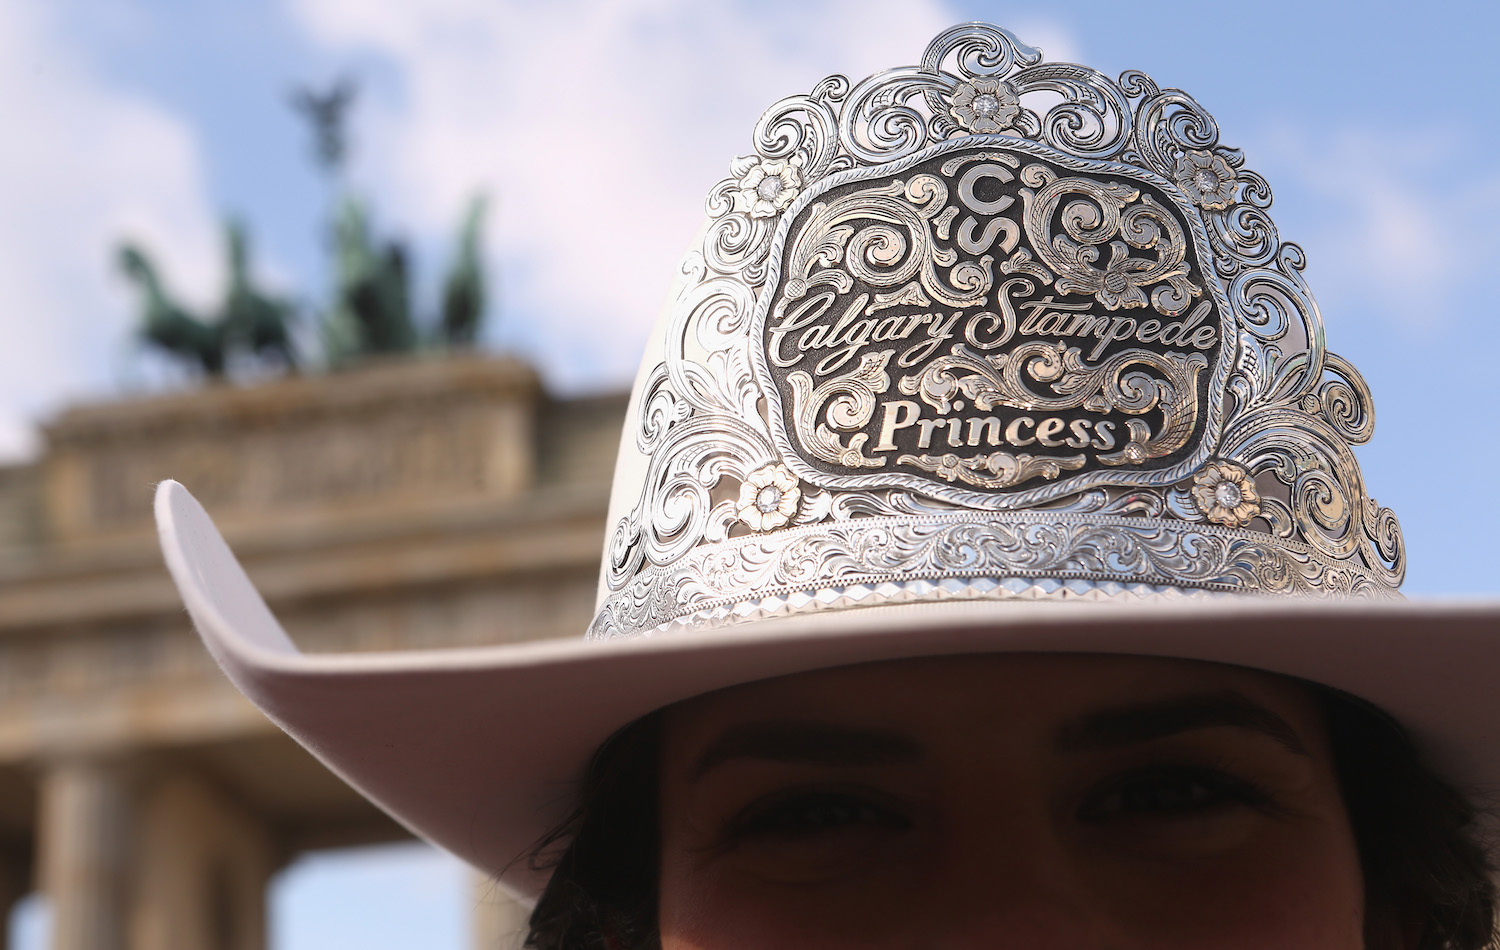 BERLIN, GERMANY - MARCH 09:  (EXCLUSIVE COVERAGE) 2018 Calgary Stampede Princess Jaden Holle poses at the Brandenburg Gate as the group visits Germany to participate in the Internationale Tourismus-Boerse Berlin (ITB) tourism trade fair, where they present Canadian Western culture and First Nation Heritage, on March 9, 2018 in Berlin, Germany. The Calgary Stampede is an annual ten-day rodeo festival in Canada. The event, featuring one of the world's largest rodeos, attracts over one million visitors per year. Each year, an Indian Princess is selected from one of the five nations group of Native Americans as part of the Stampede's 'royalty.'  (Photo by Adam Berry/Getty Images)